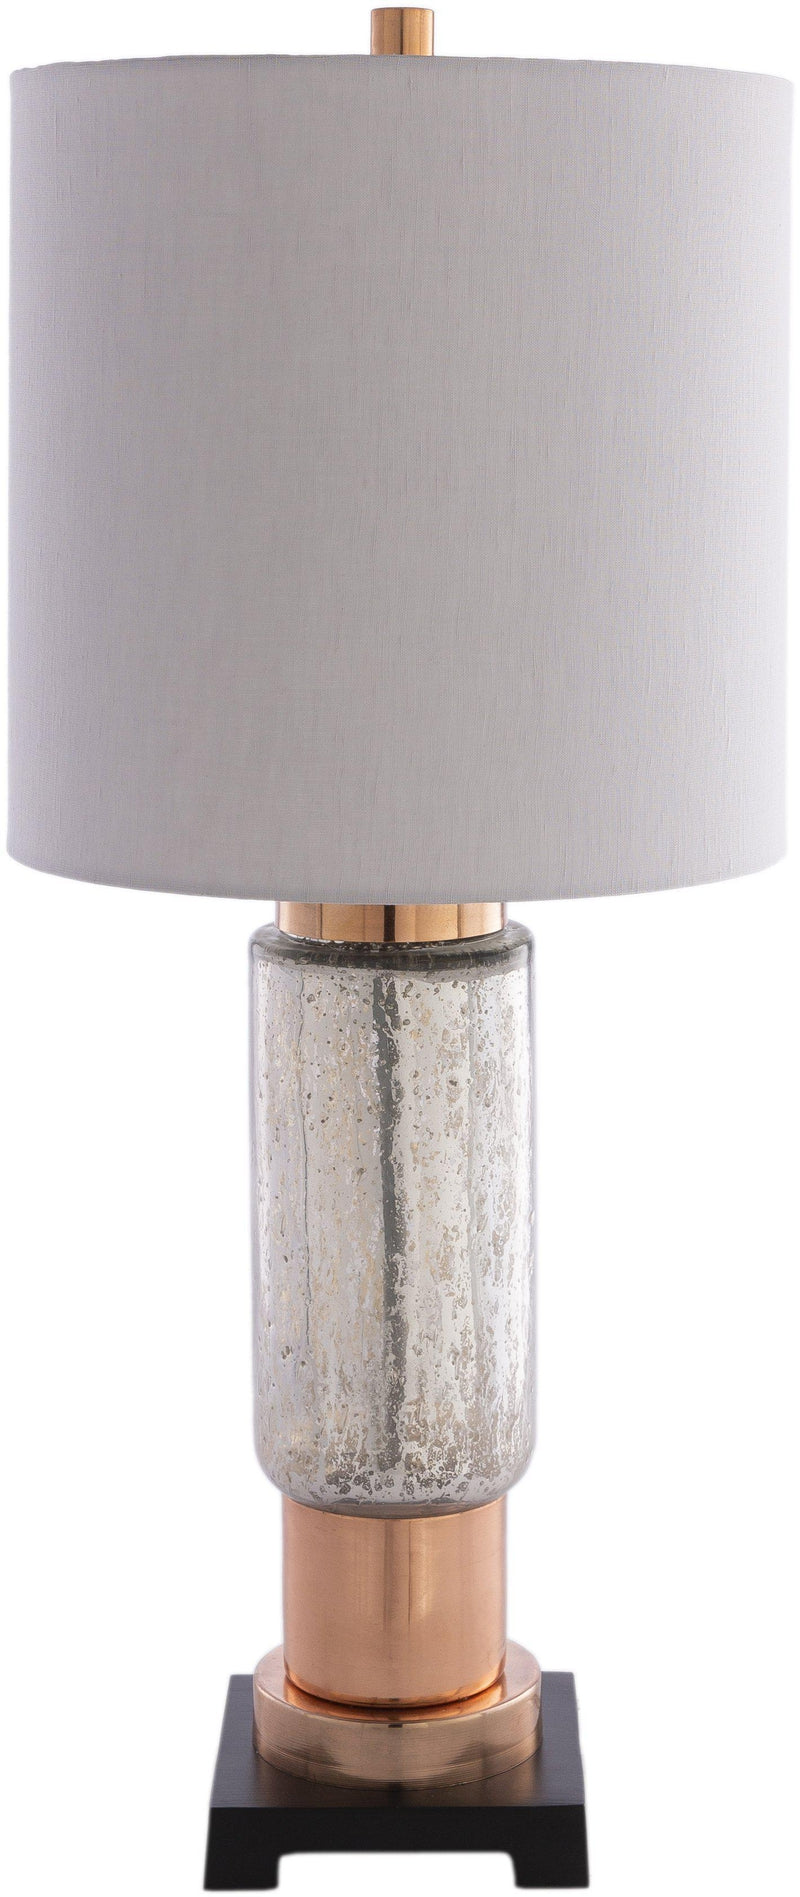 Schachendorf Modern Table Lamp